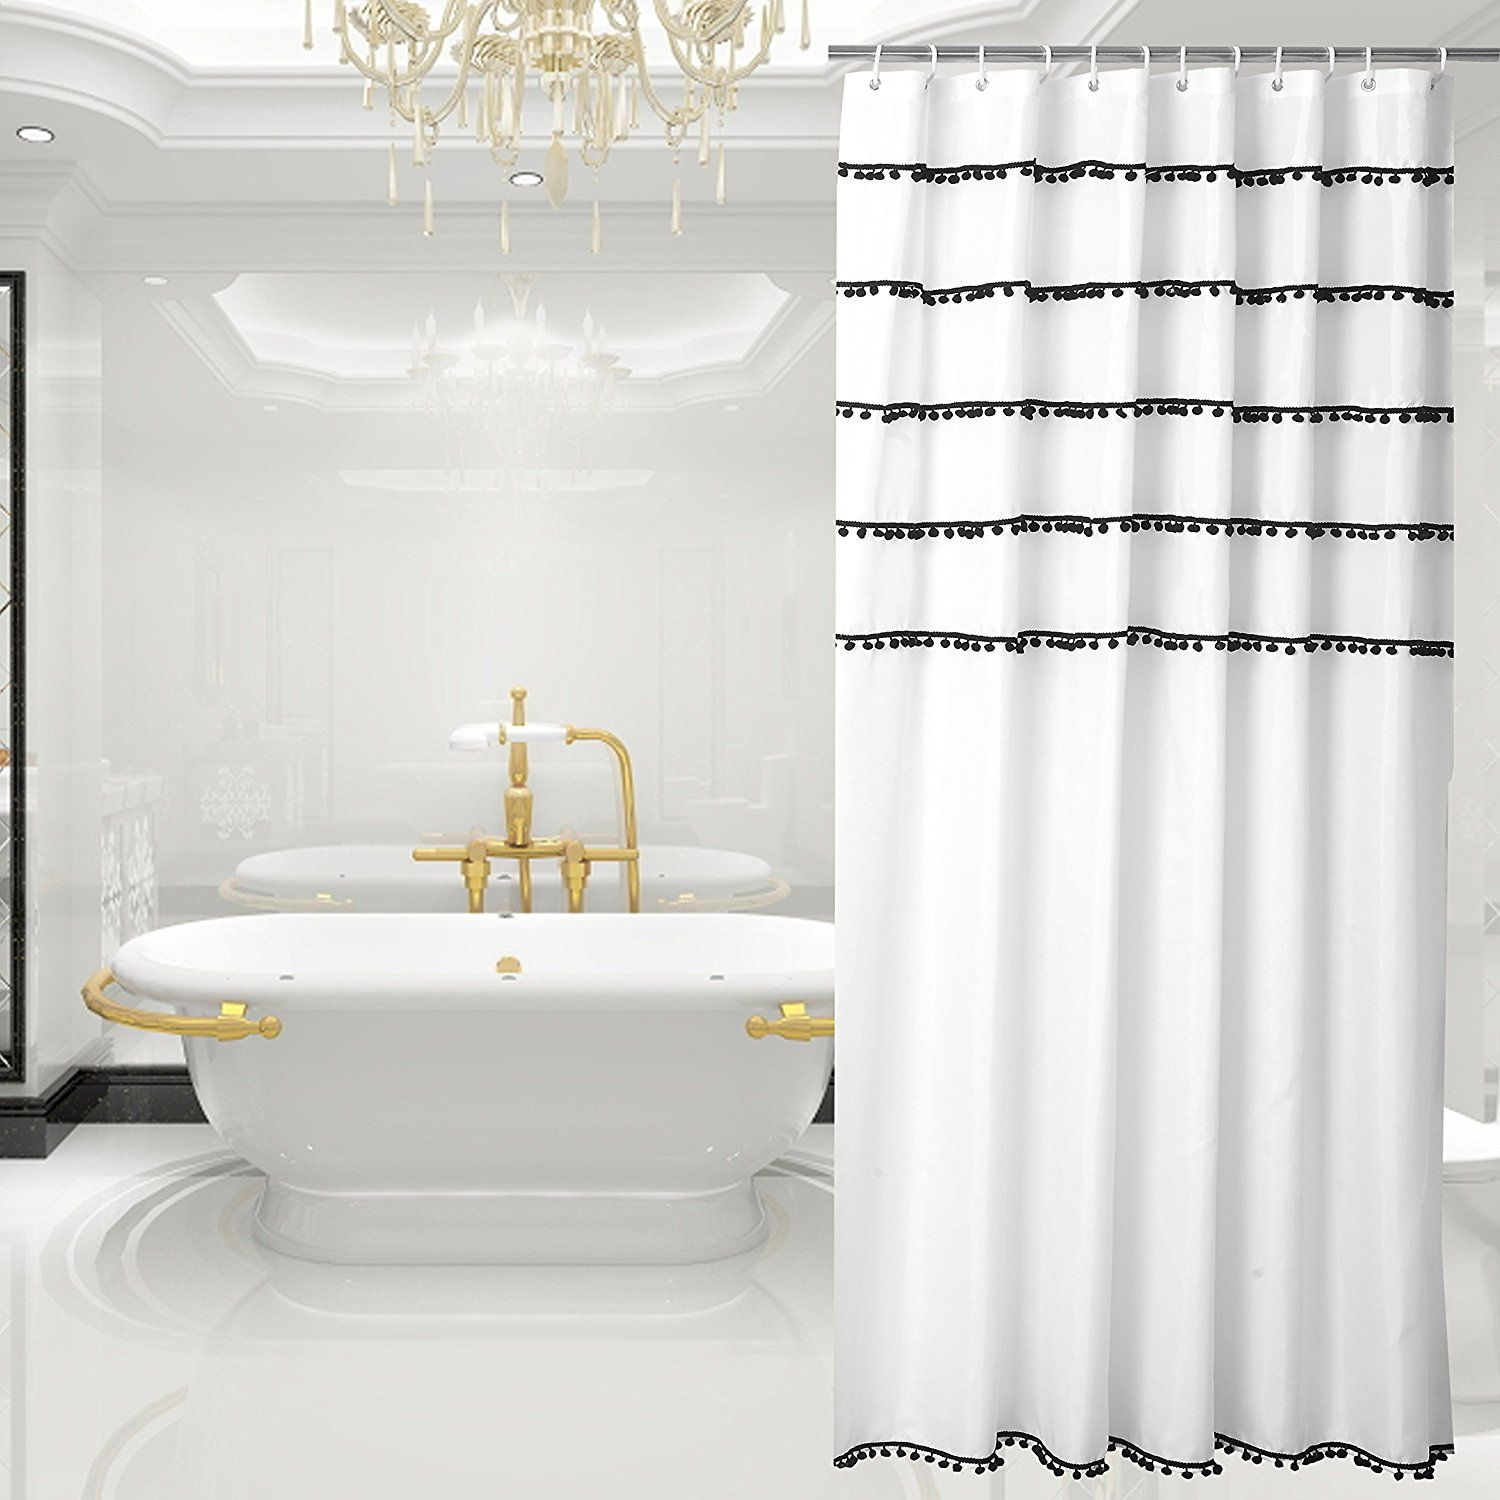 Amazon Yuunity Shower Curtain Polyester Fabric Mildew Resistant Water Proof Non Toxic Bath 72x80 White With Black Tassel Home Kitchen